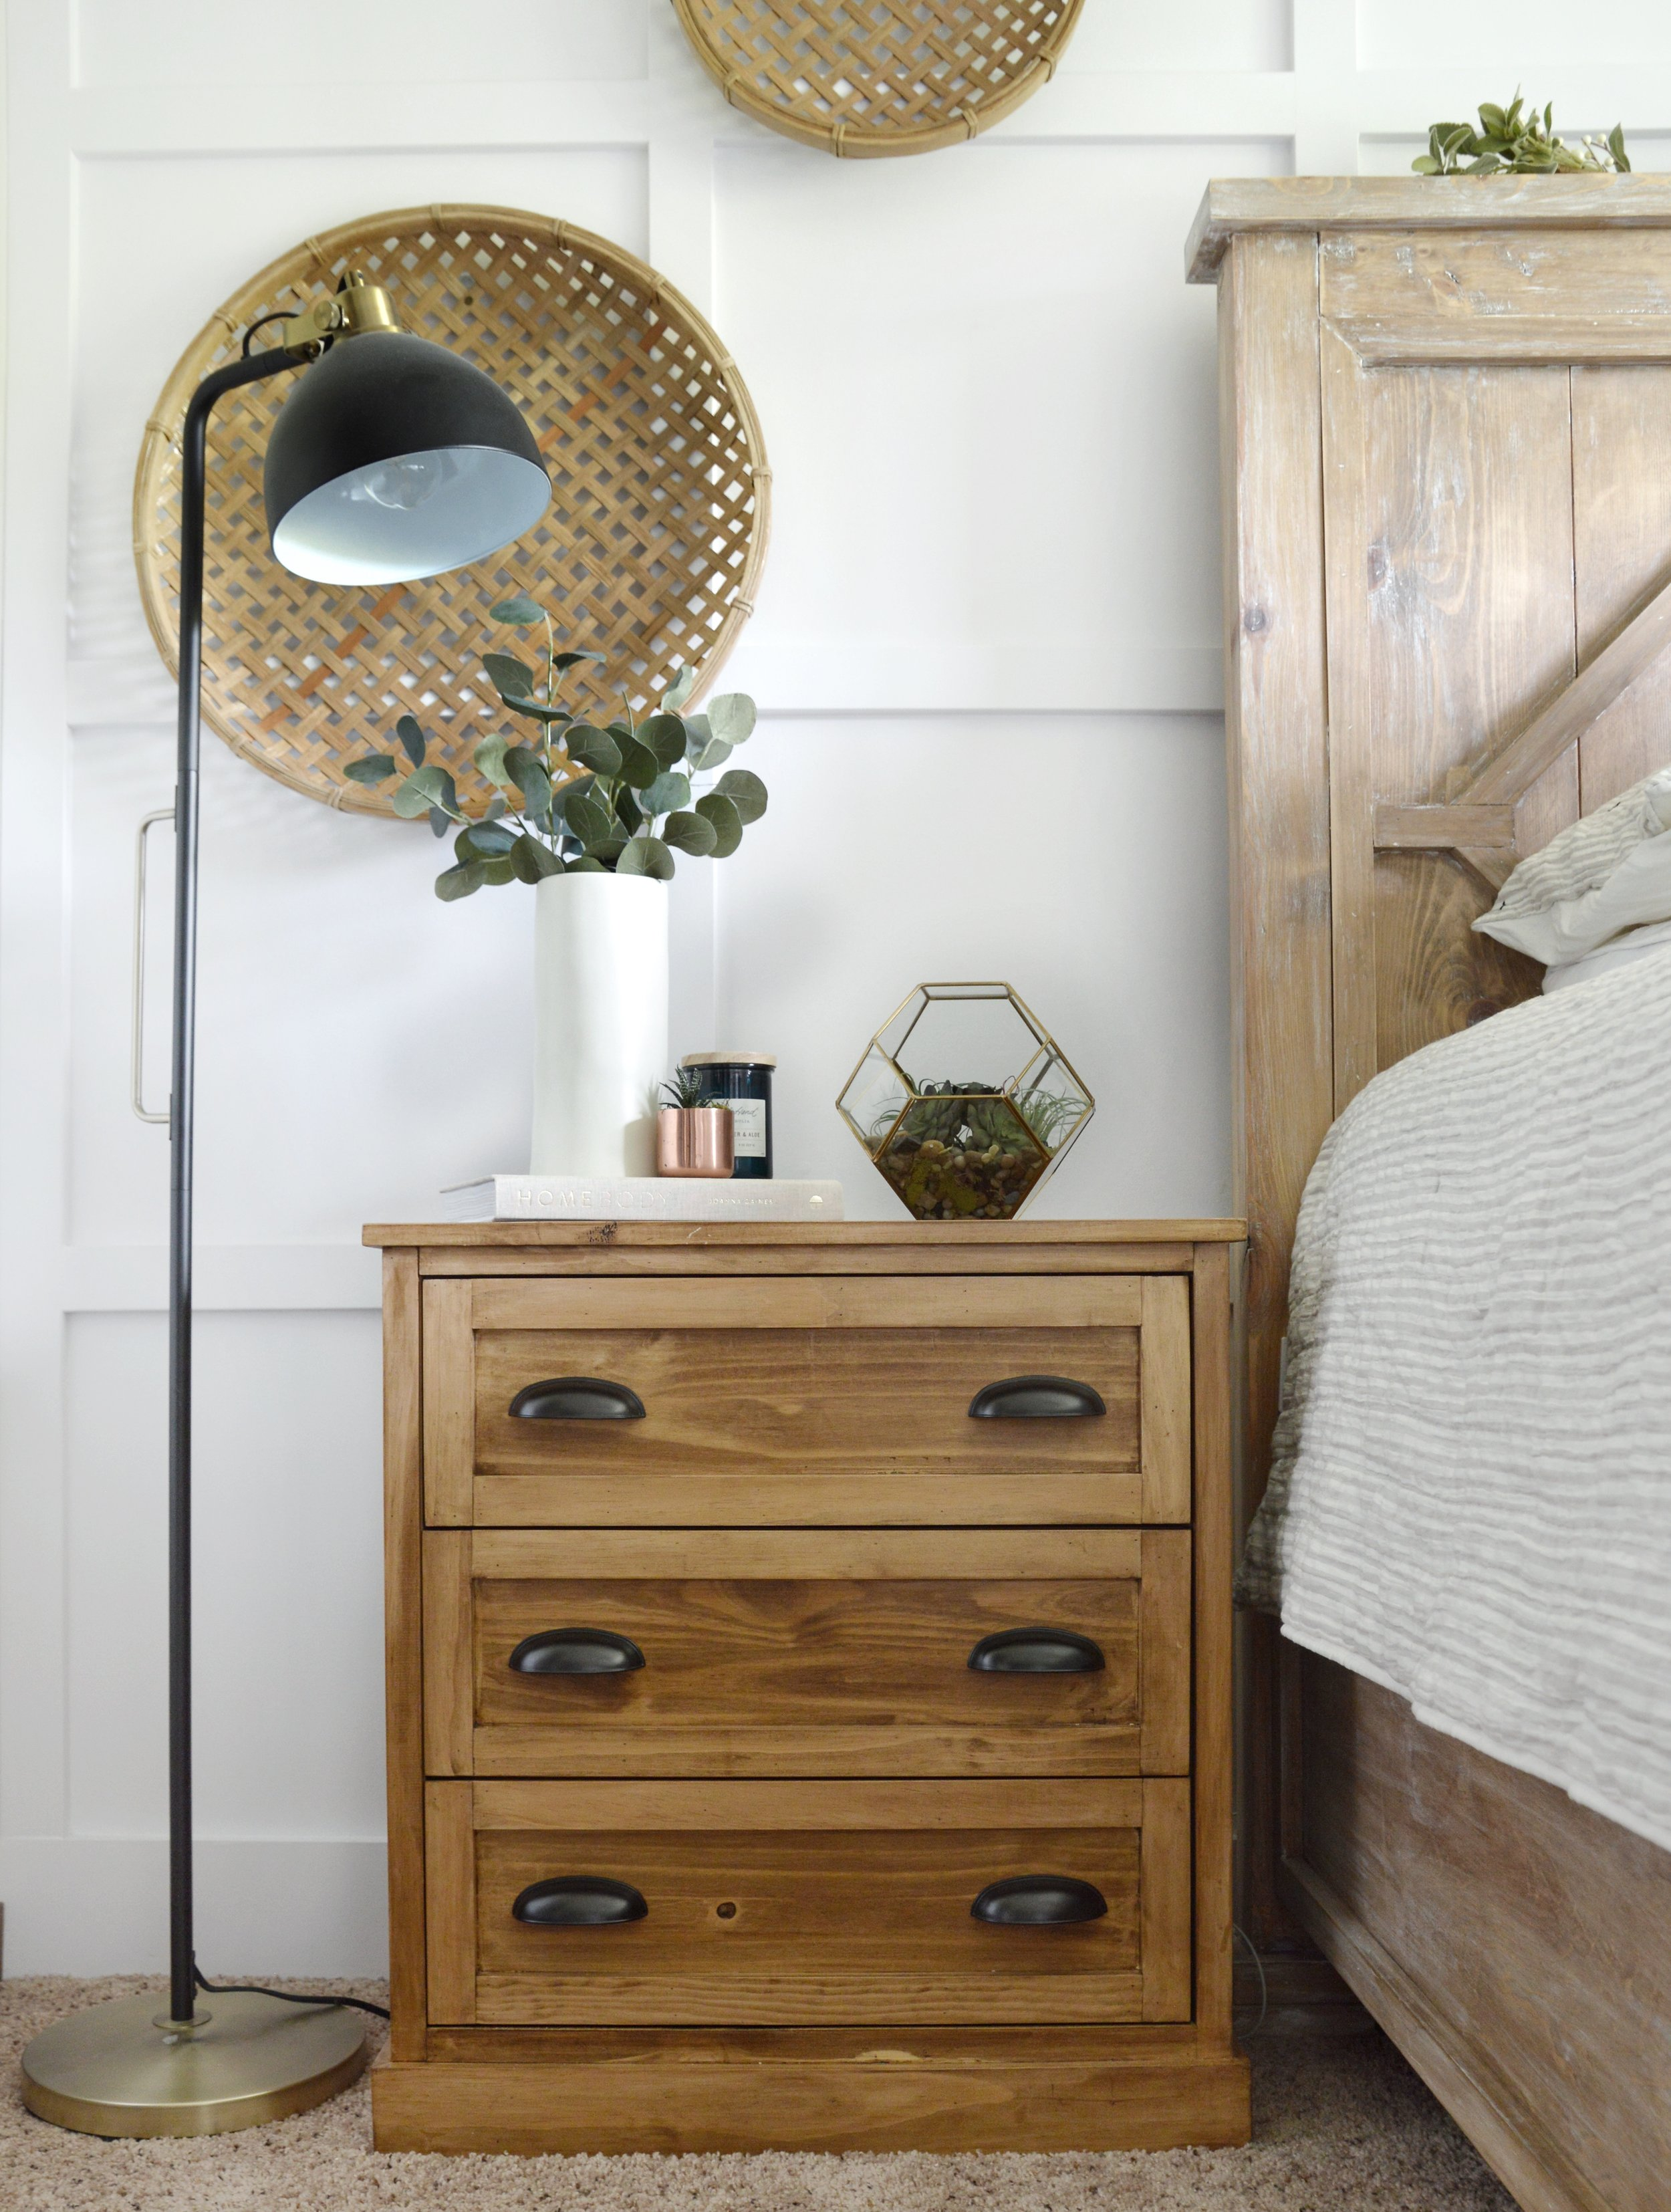 After adding a few personal touches, this Ikea Rast nightstand hack is the perfect compliment to our master bedroom.